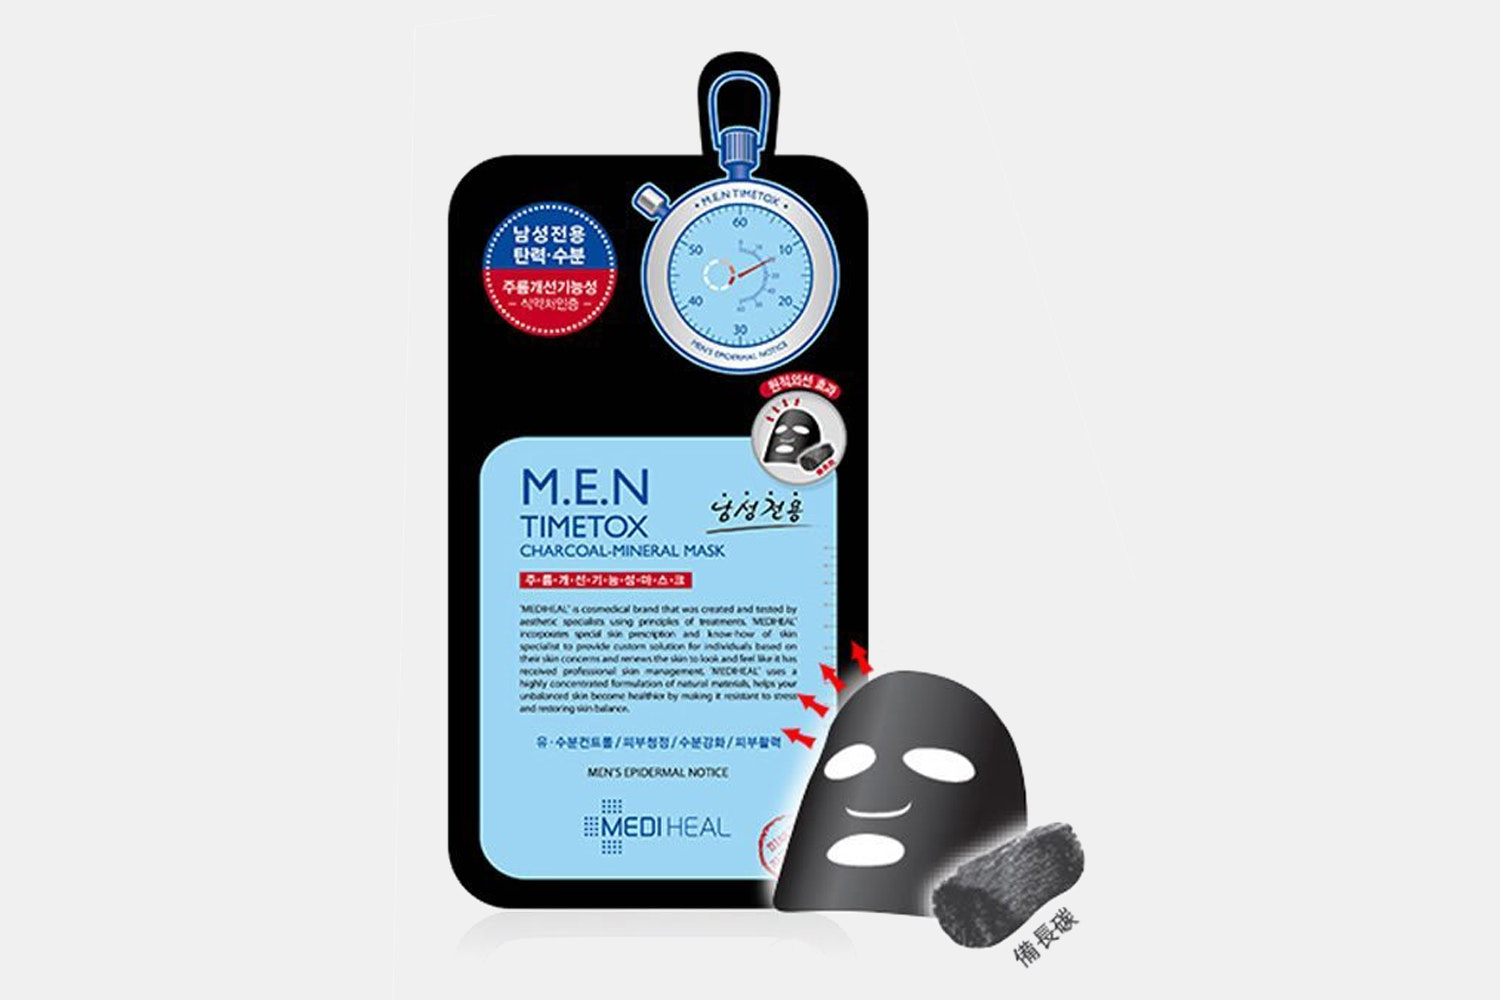 Mediheal M.E.N. Timetox Black Mask EX (10-Pack)